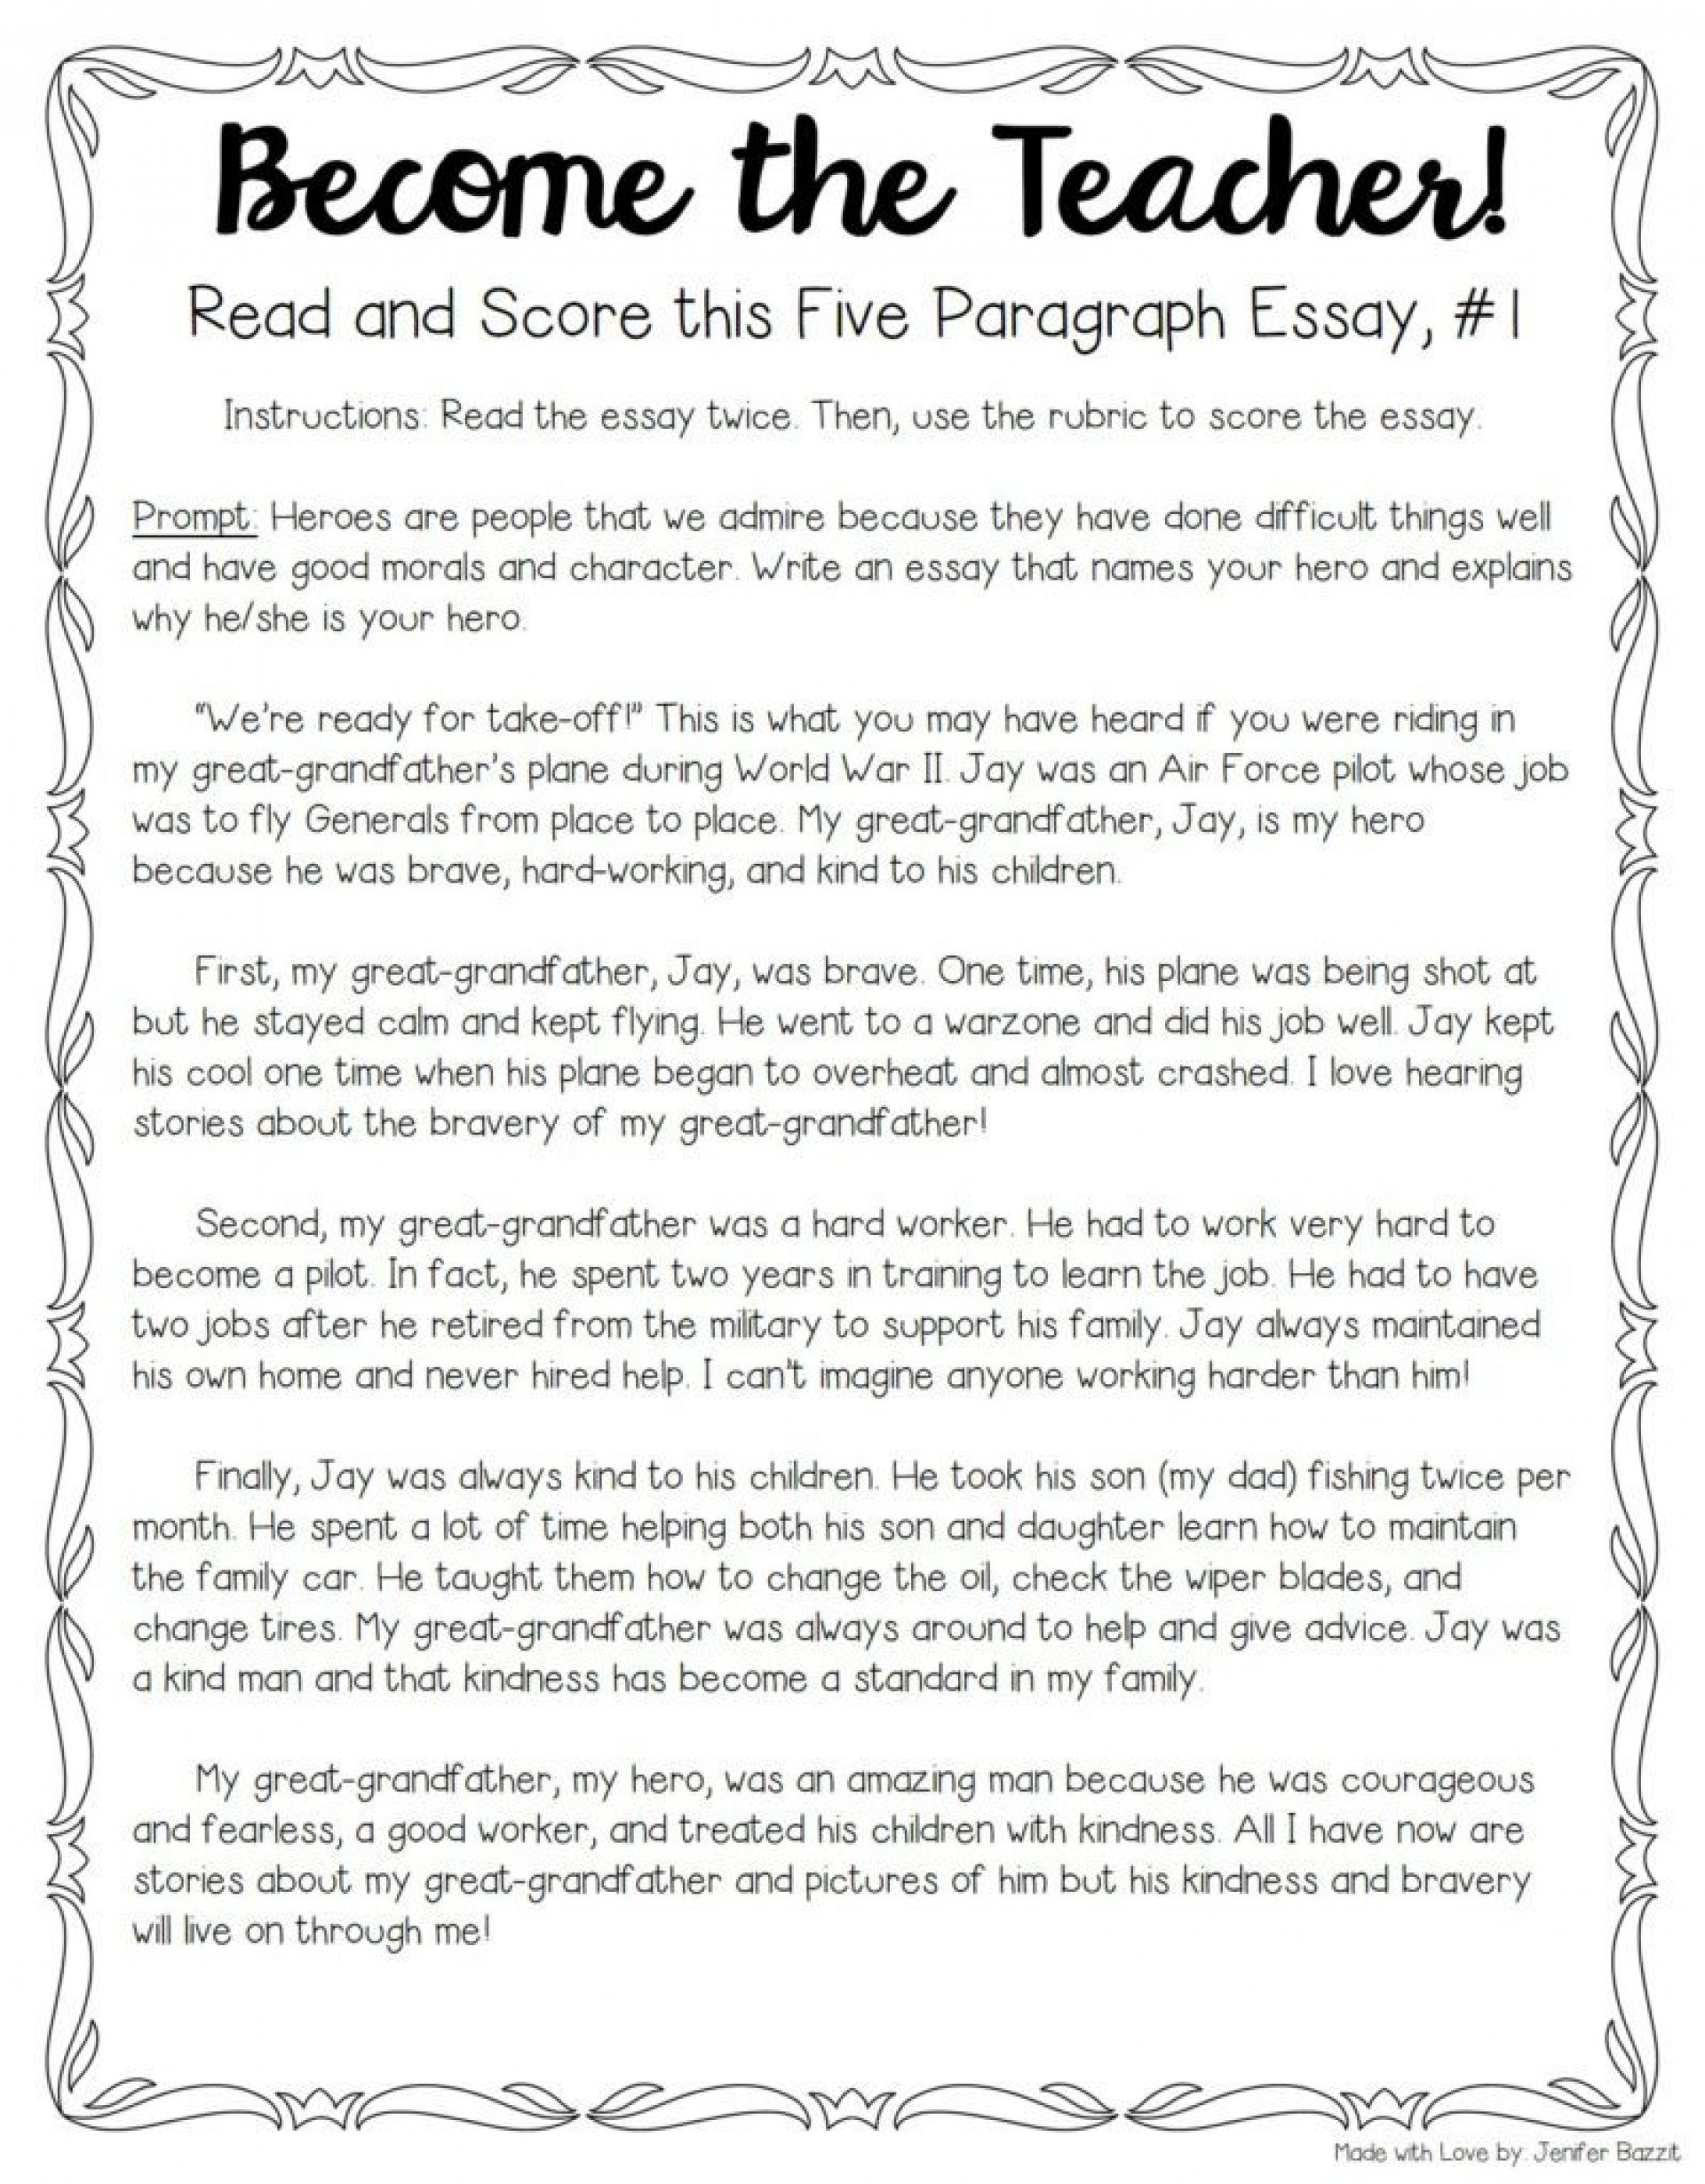 014 Five Paragraph Essay Full 799x1024resize7992c1024 Example Read Unusual My Reddit For Free Online 1920